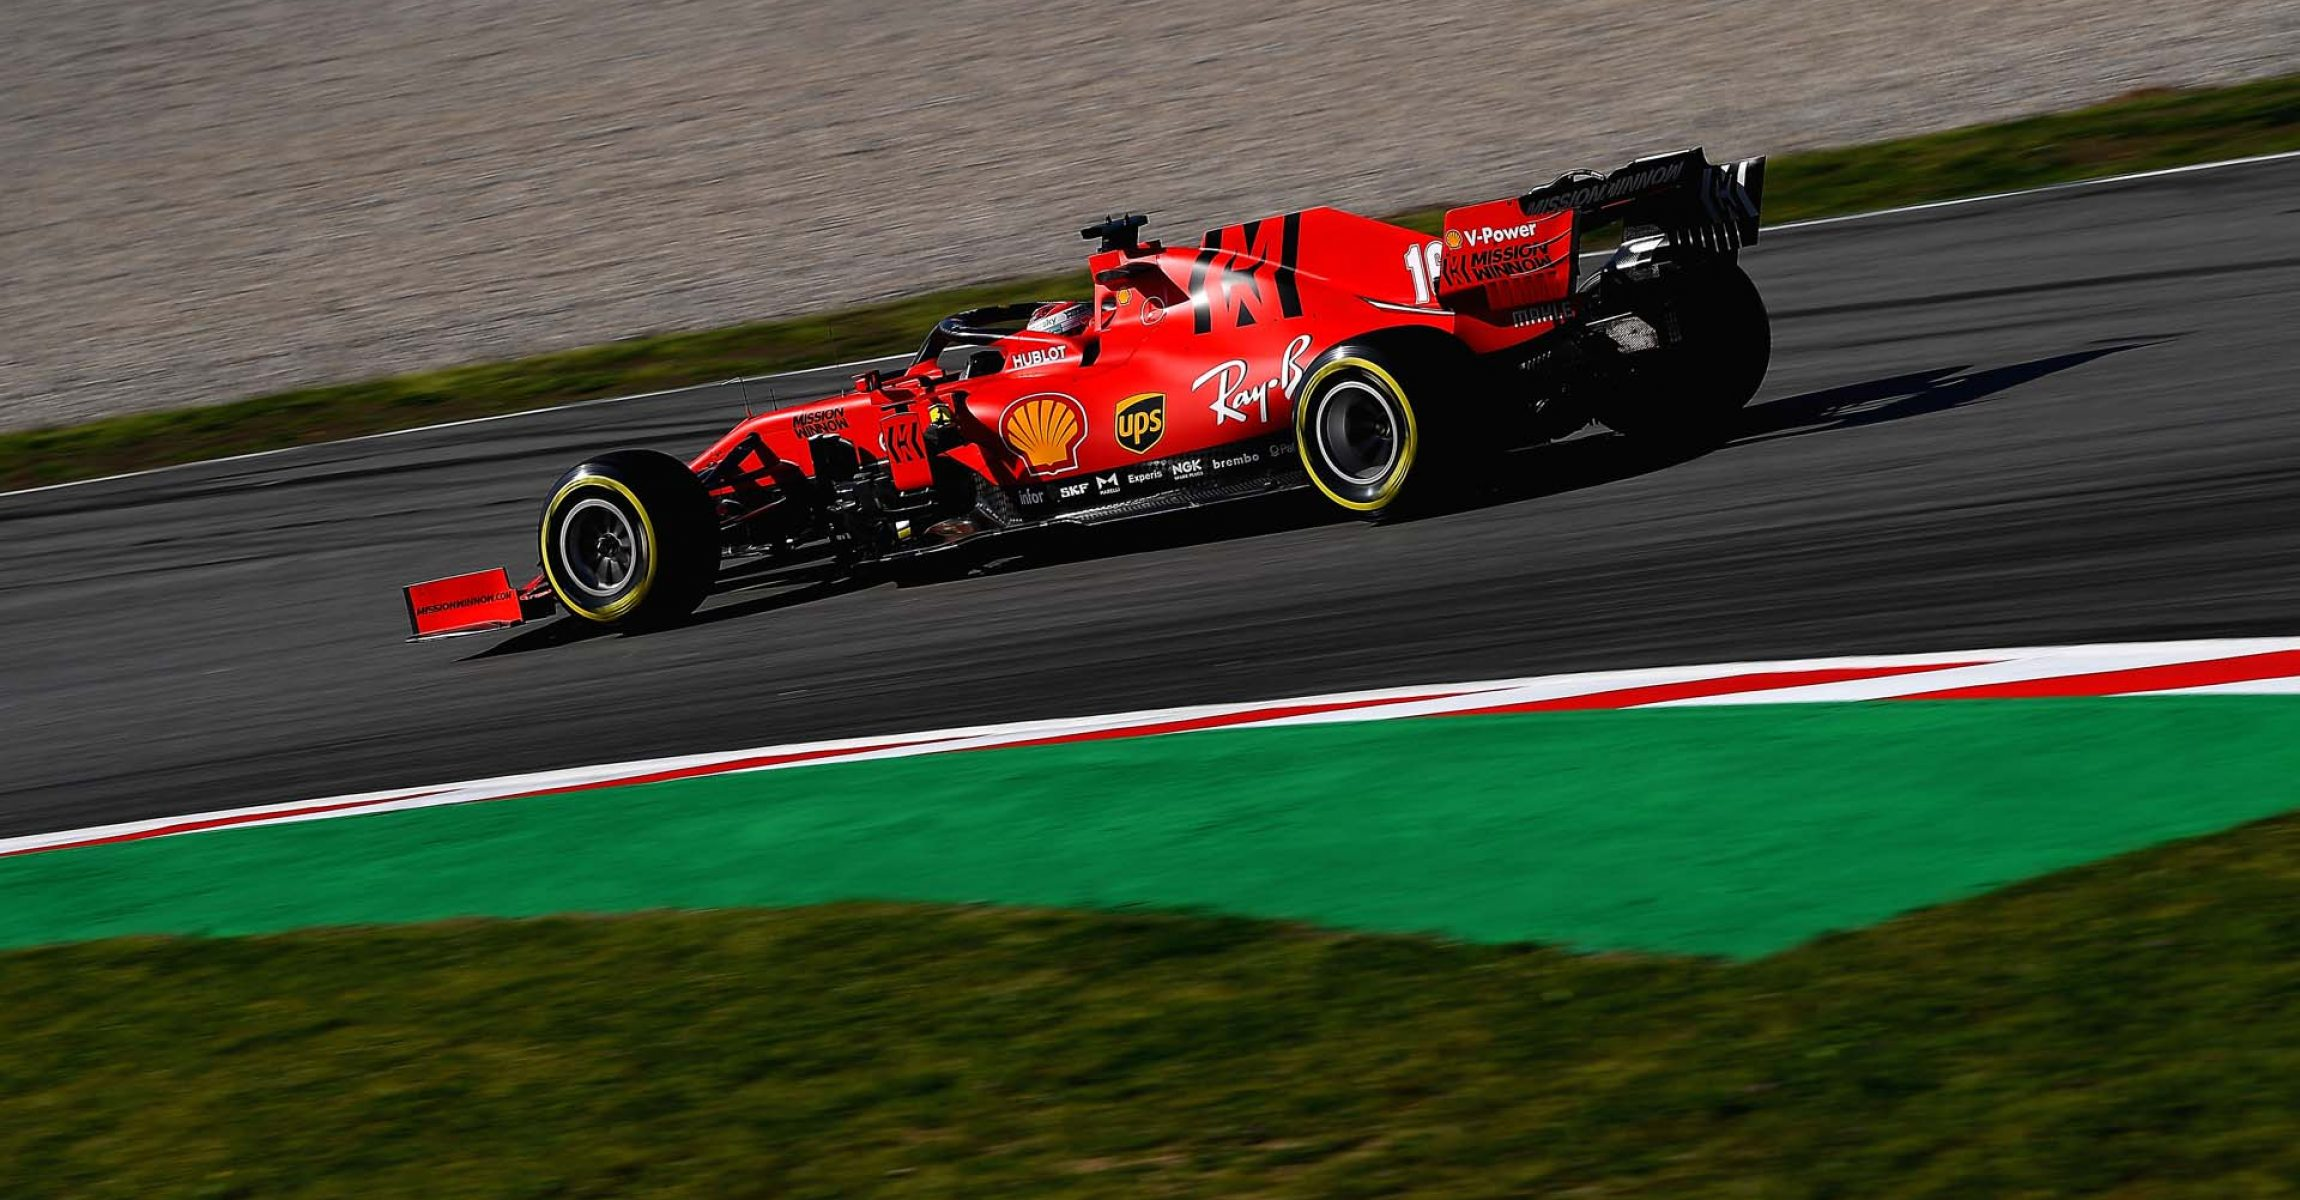 TEST T2 BARCELLONA - VENERDÌ 28/02/20  - CHARLES LECLERC  © Scuderia Ferrari Press Office